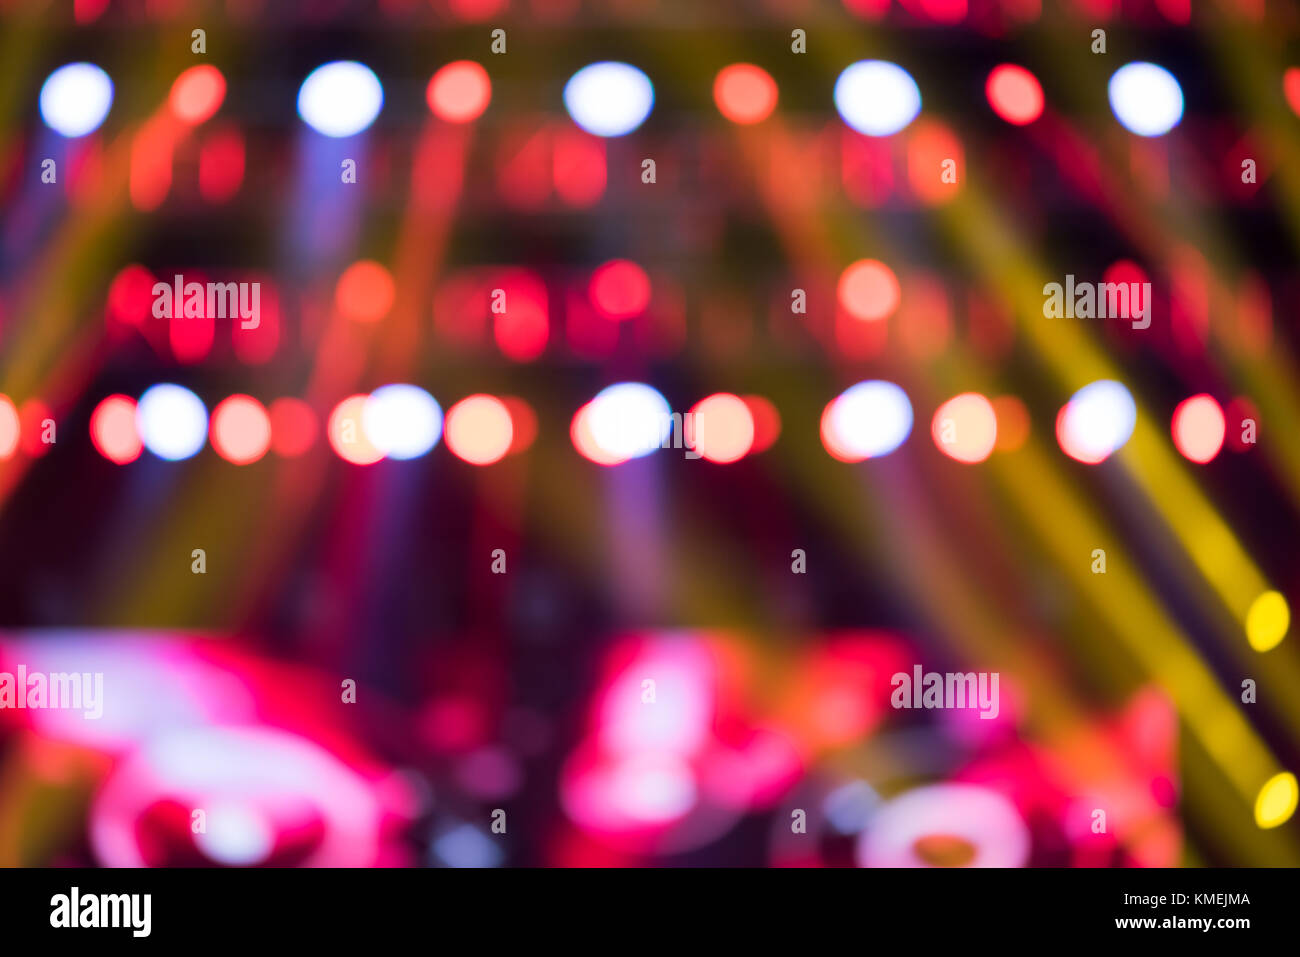 Music live show multicolor lights blurred background - Stock Image